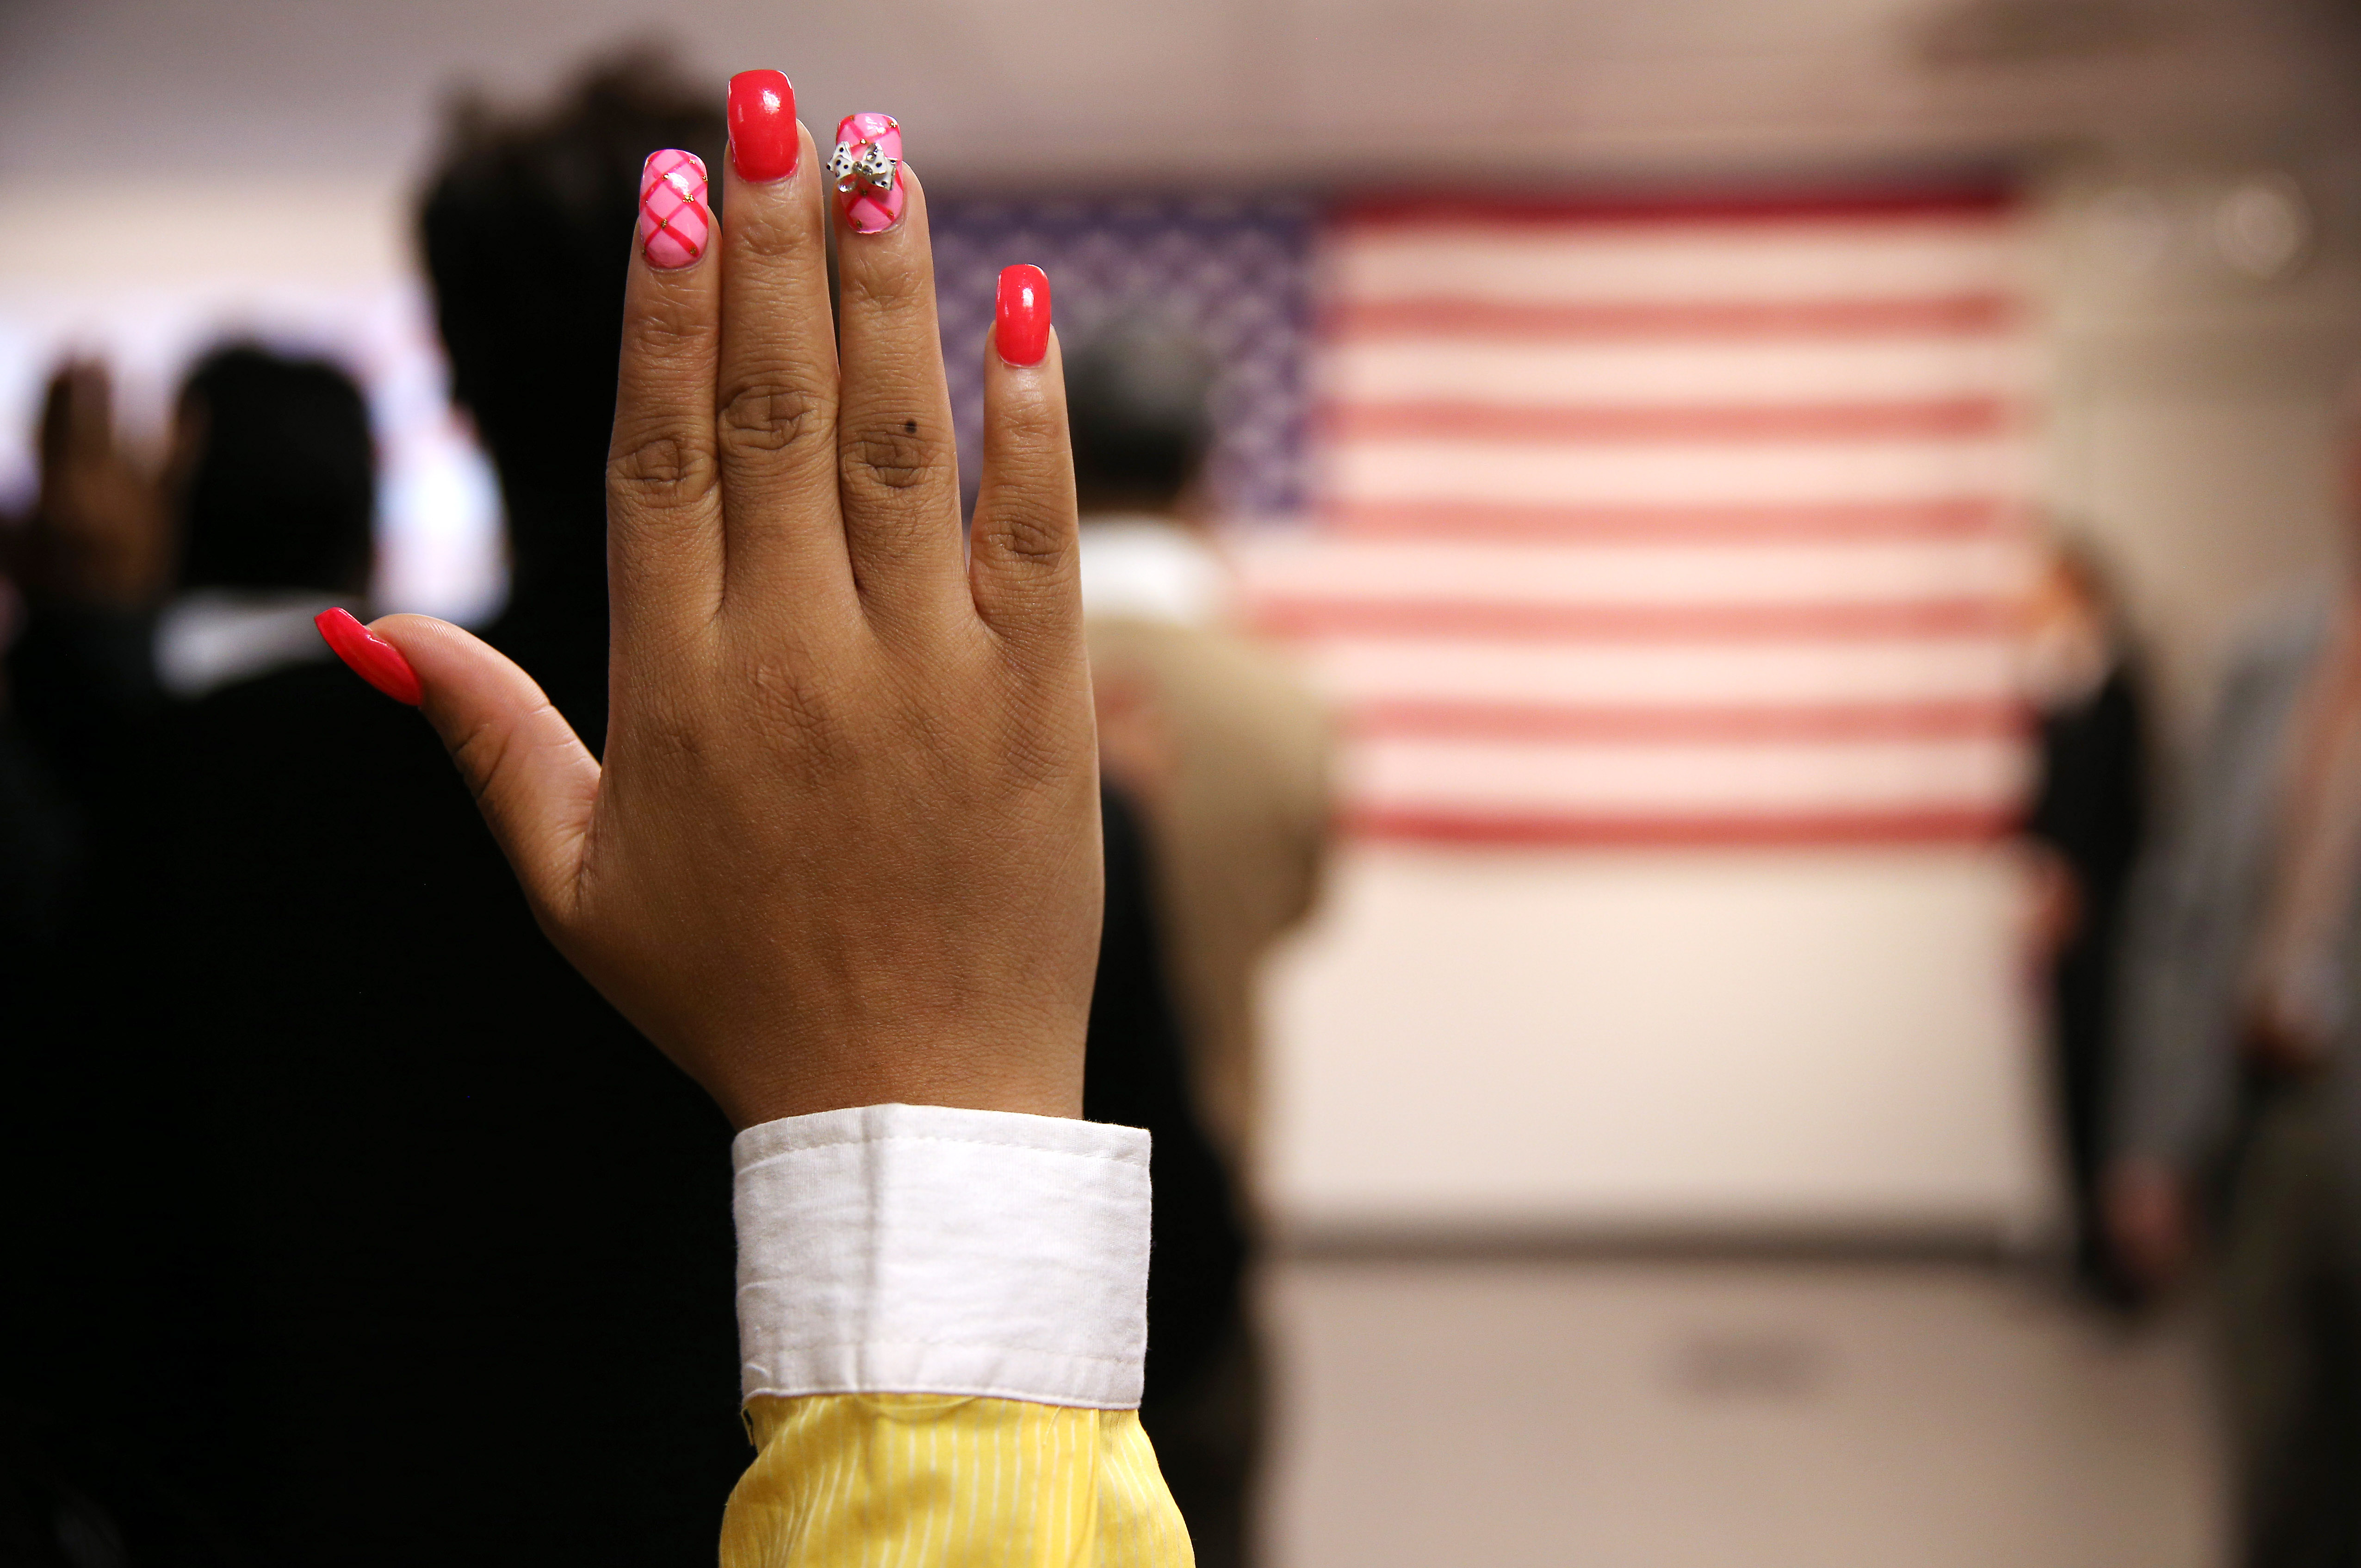 Immigrants Sworn In As US Citizens At Naturalization Ceremony